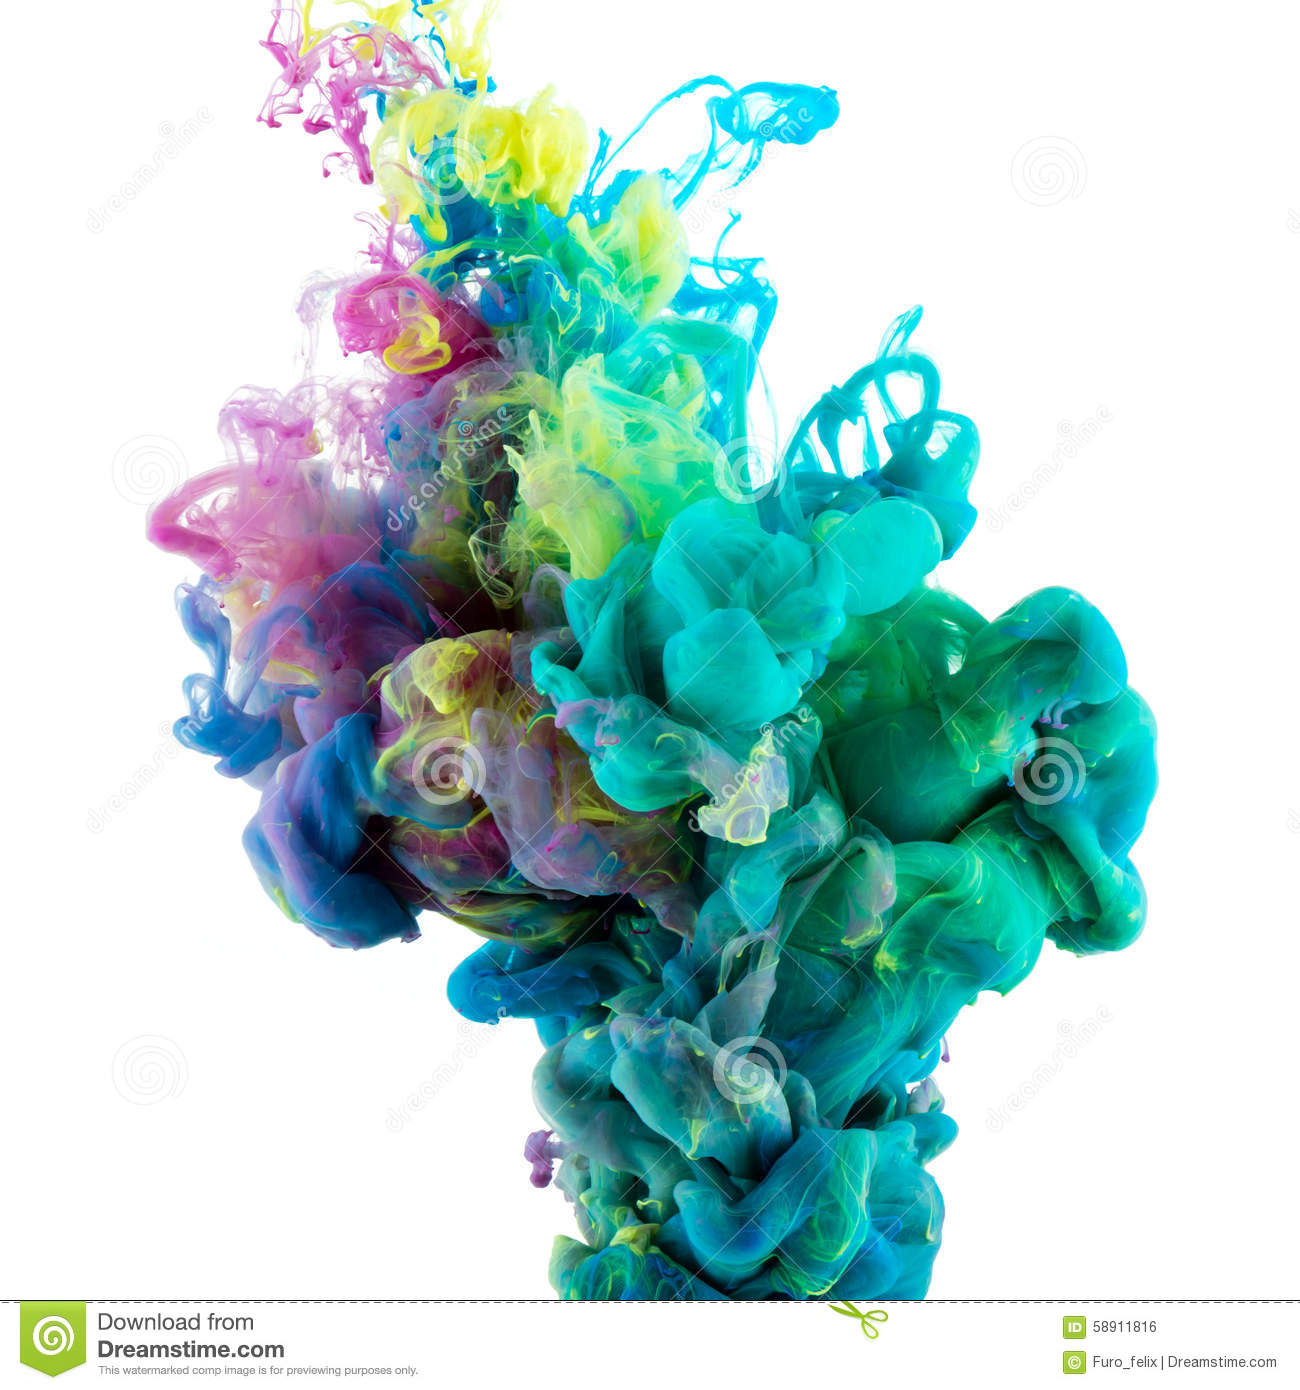 Absract color paint in water